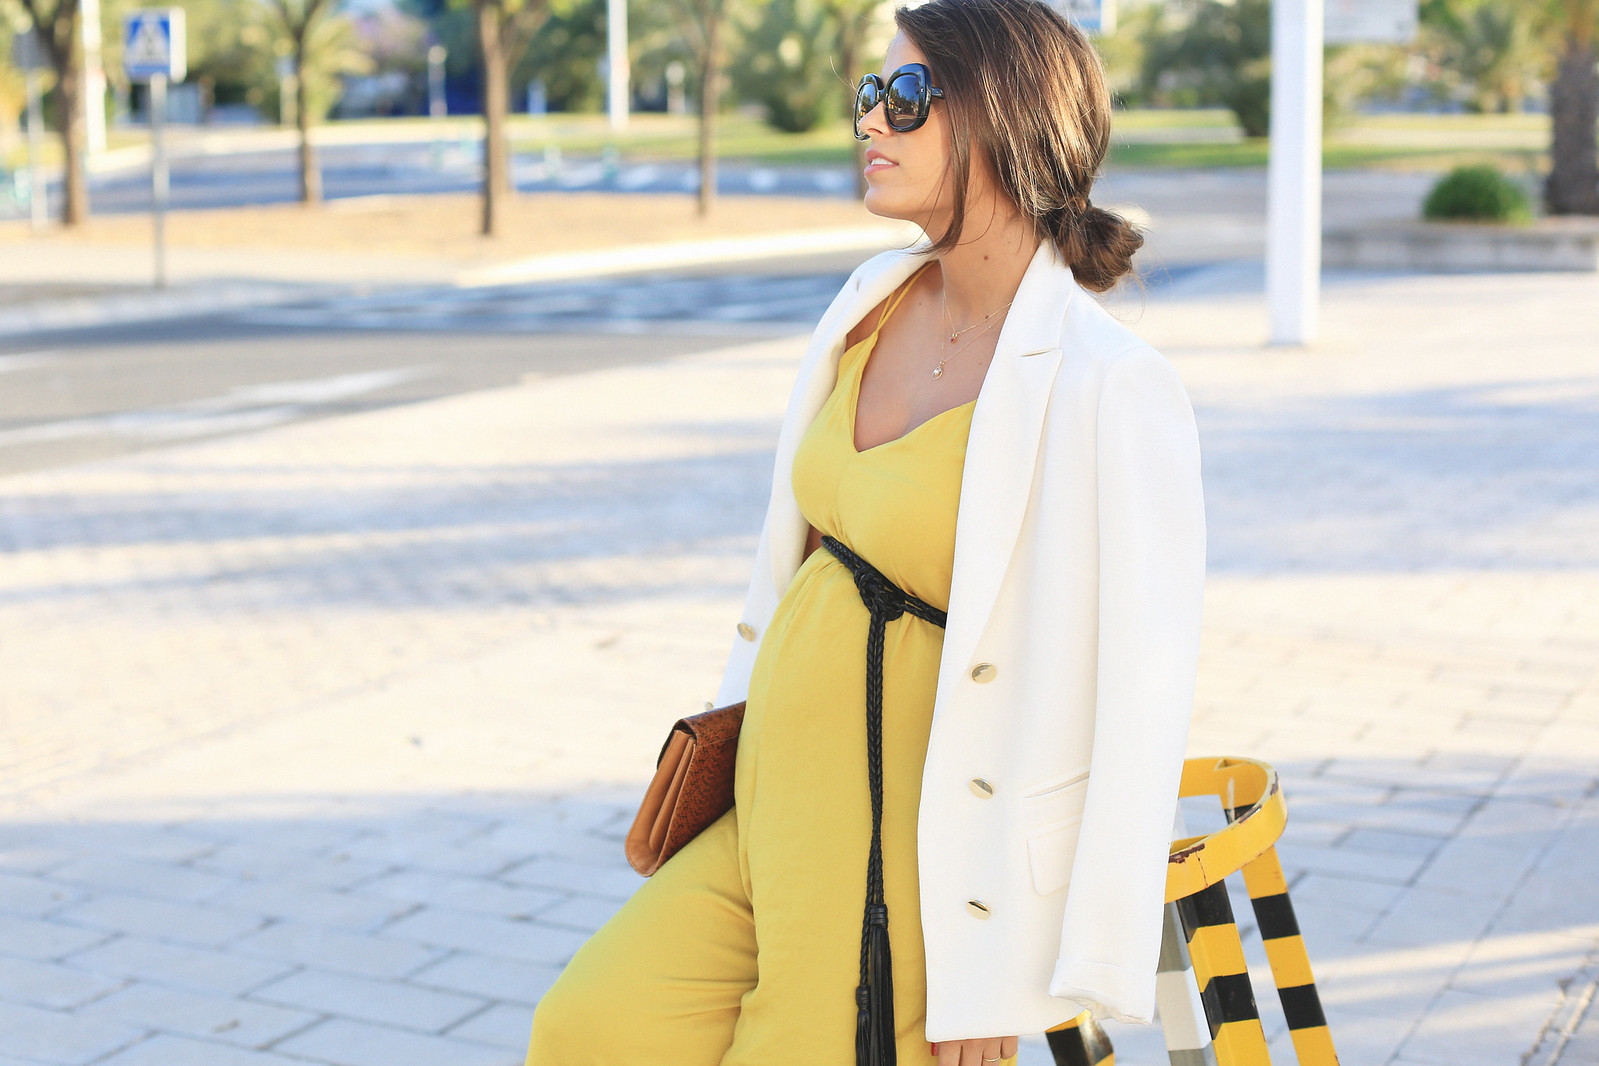 seams-for-a-desire-jessie-chanes-pregnant-outfit-mustard-long-jumpsuit-tous-jewels_cover